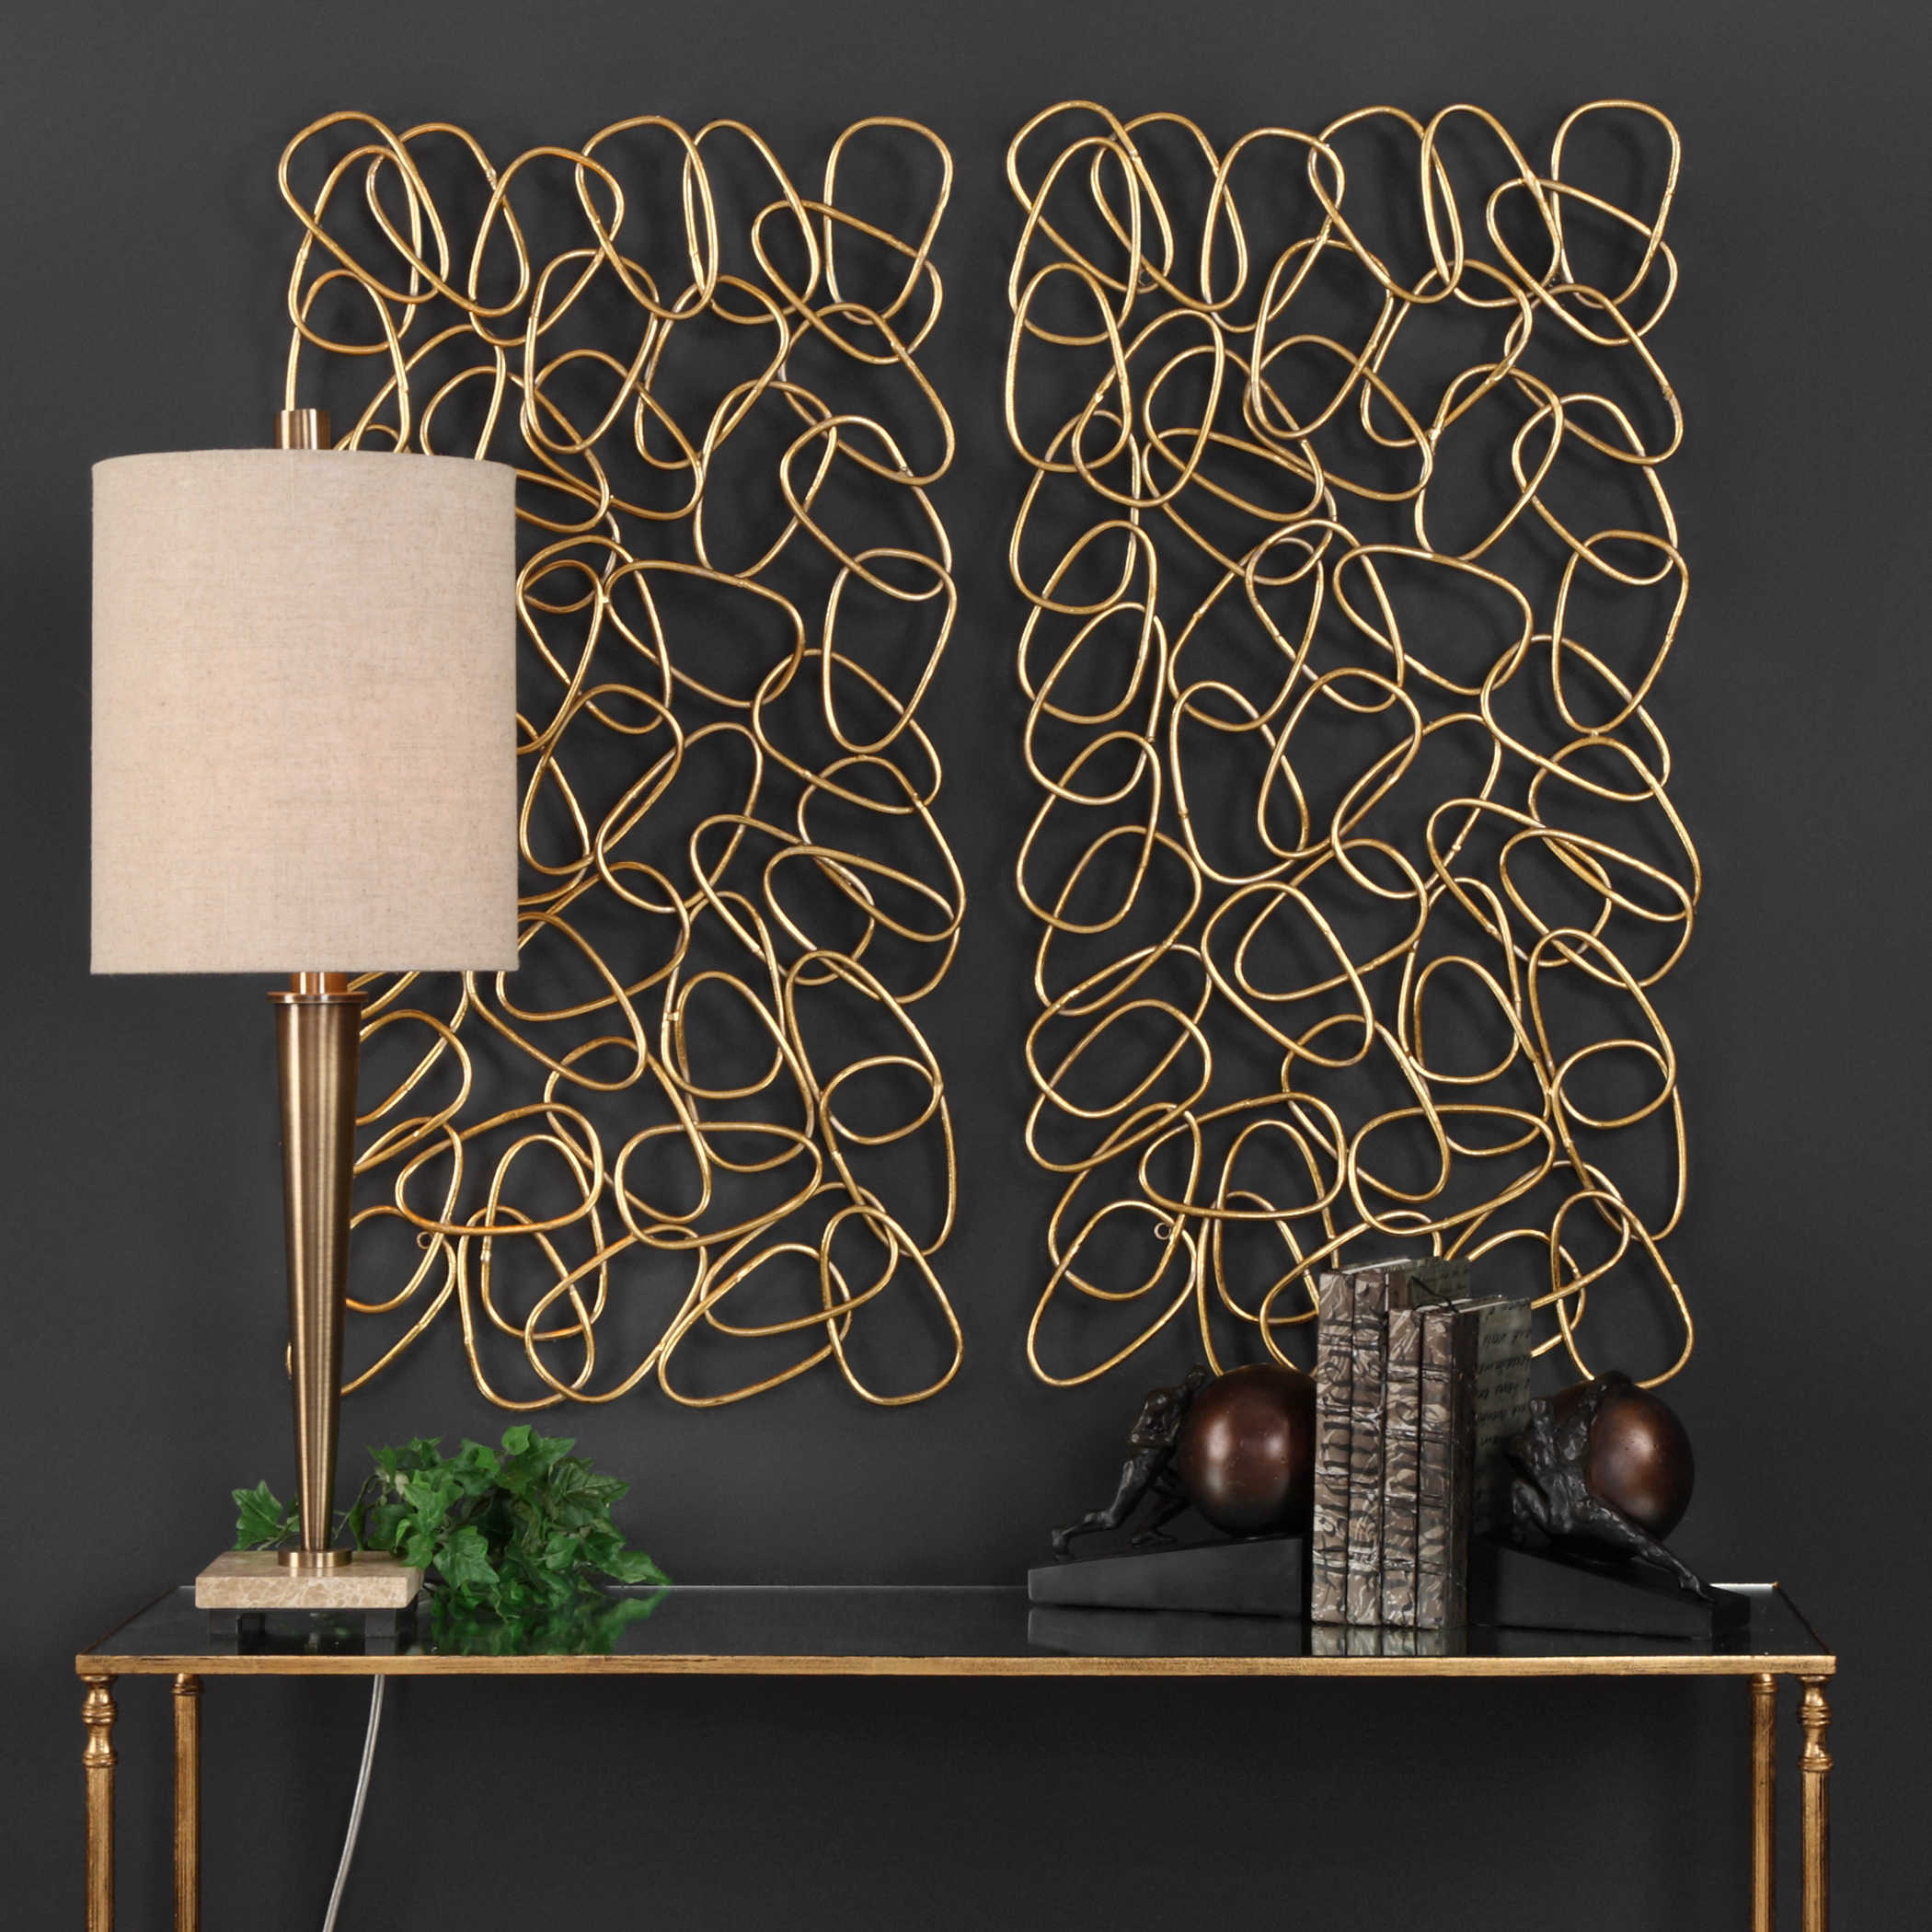 Wall Decor Silvers: Uttermost In The Loop Gold Wall Art S/2